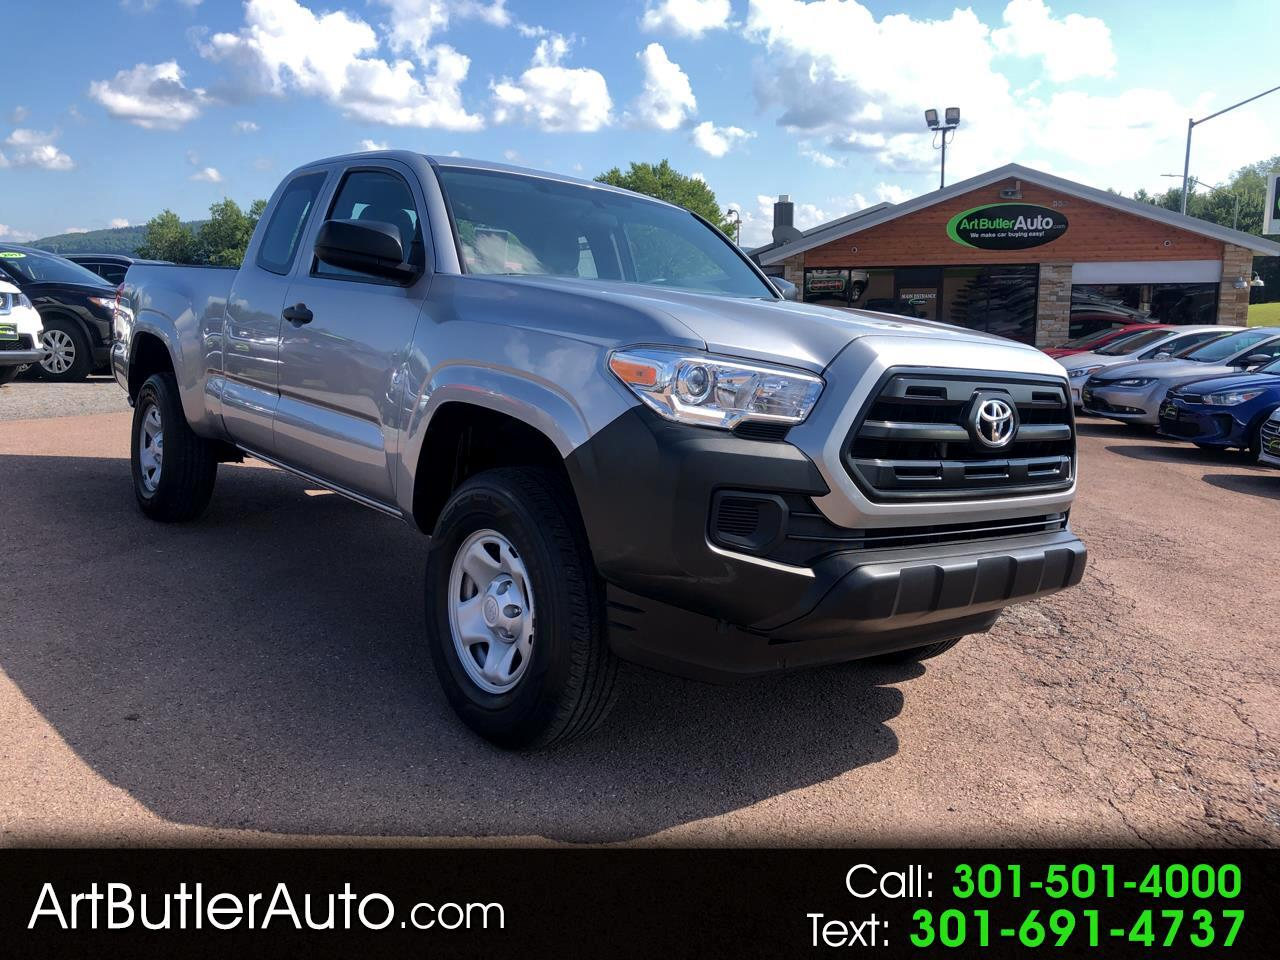 2017 Toyota Tacoma SR Access Cab 6' Bed I4 4x4 AT (Natl)